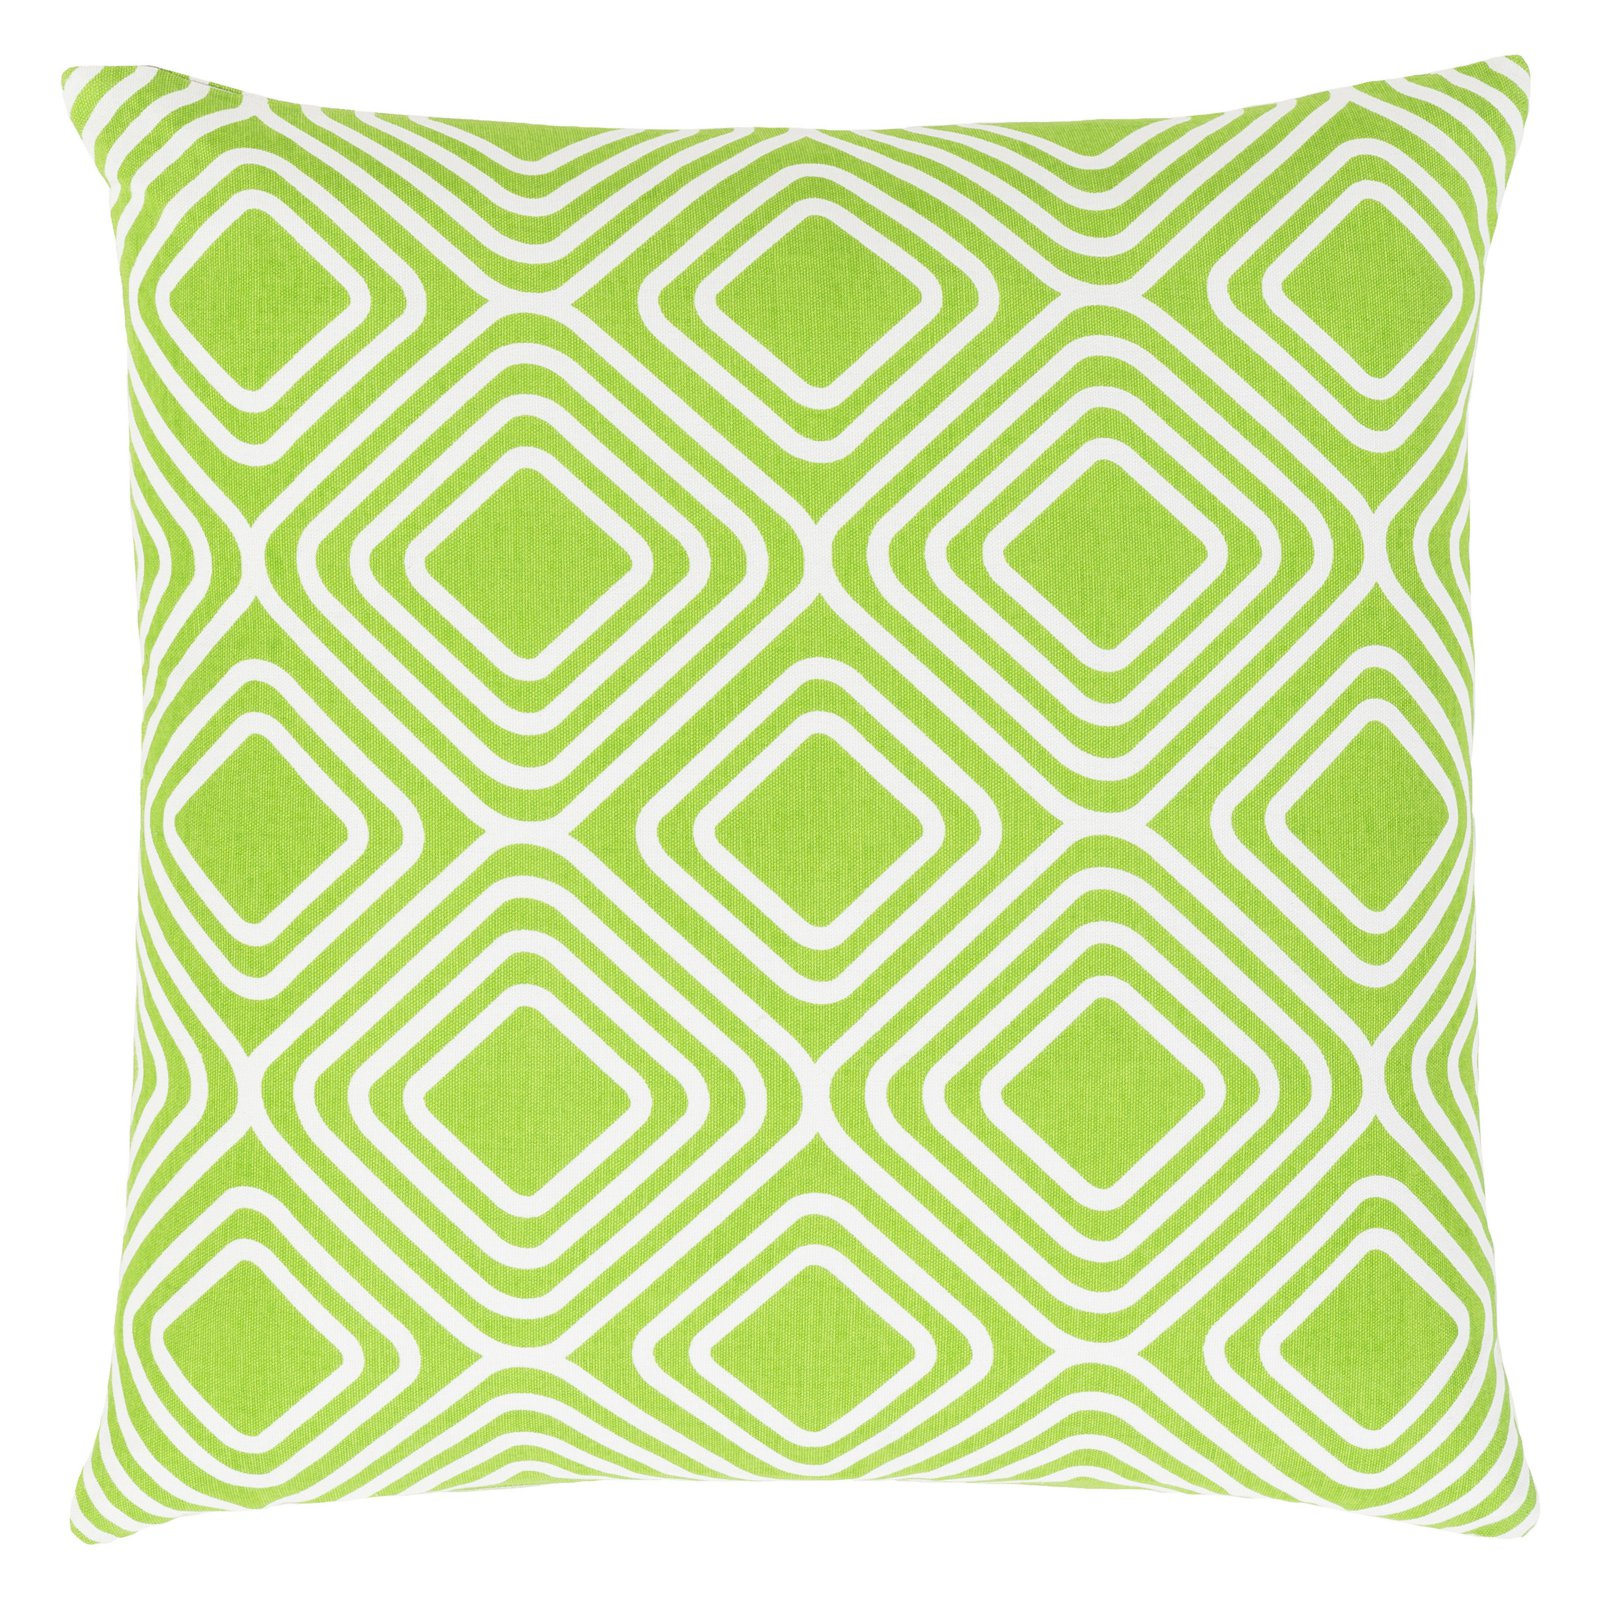 Surya Miranda III Decorative Throw Pillow